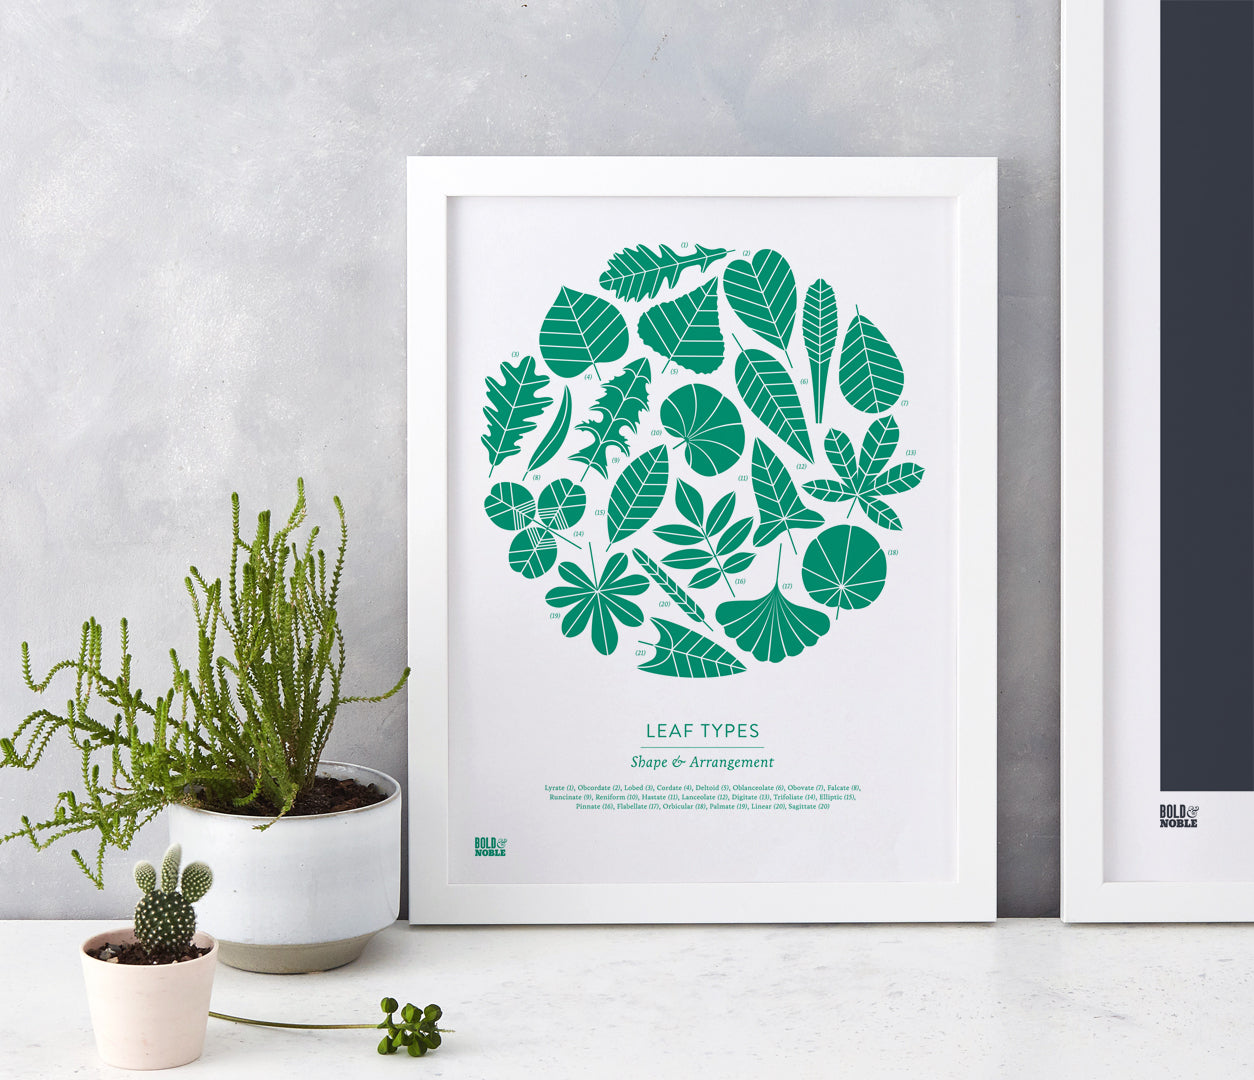 'Leaf Types' Illustrated Art Print in Emerald Green